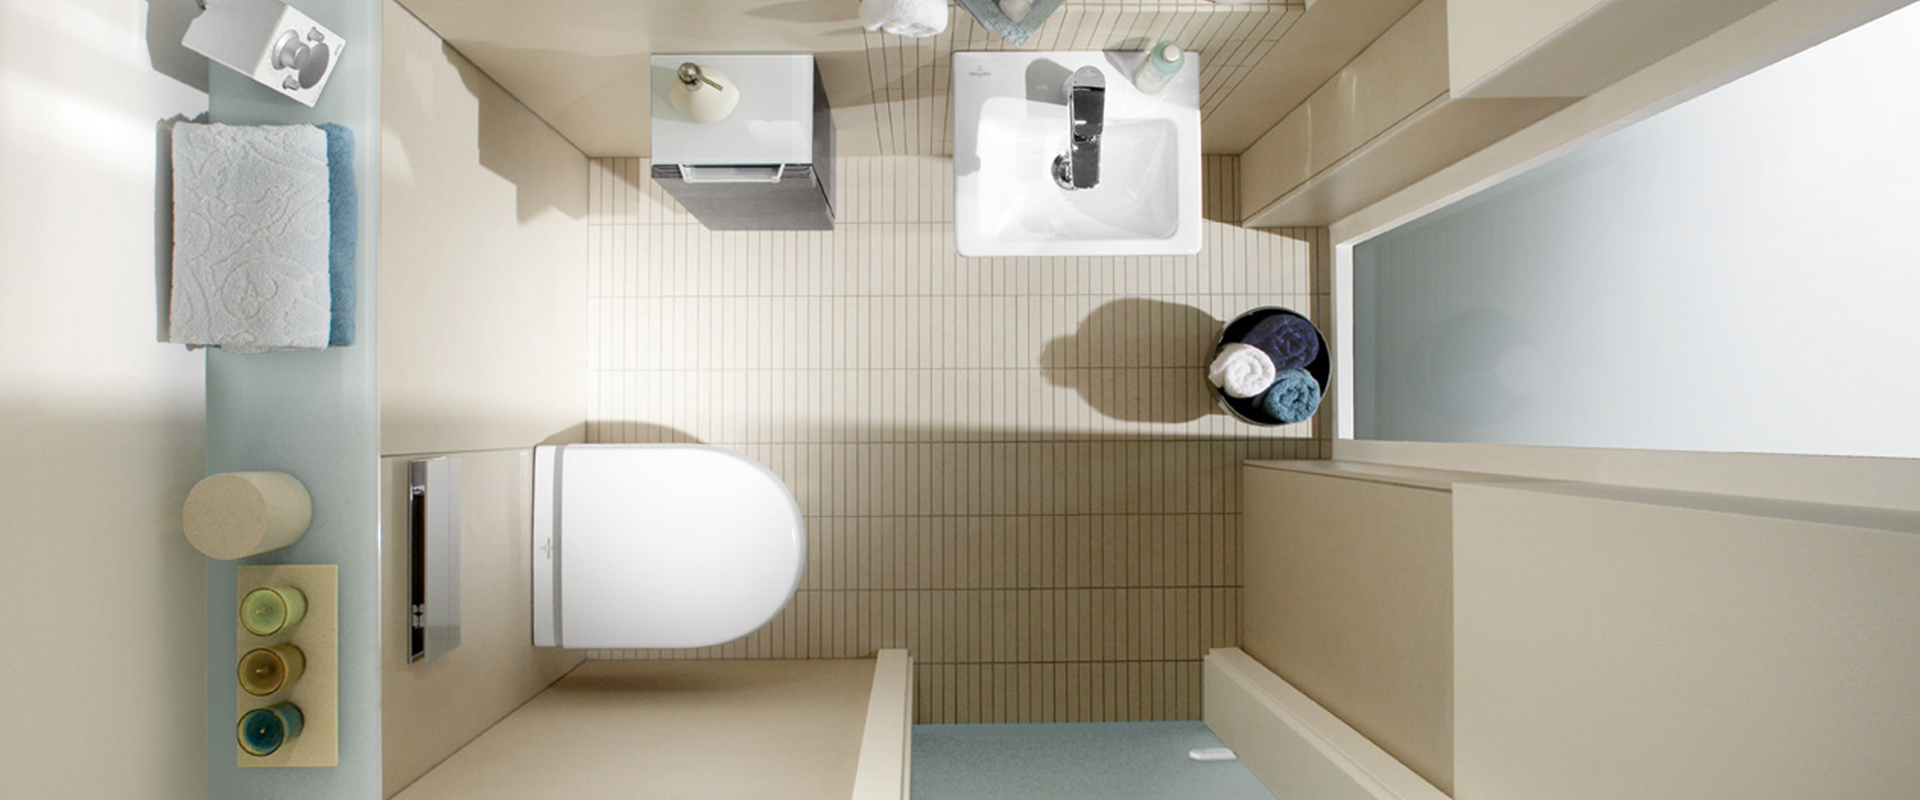 Bathroom Solutions From Villeroy Boch